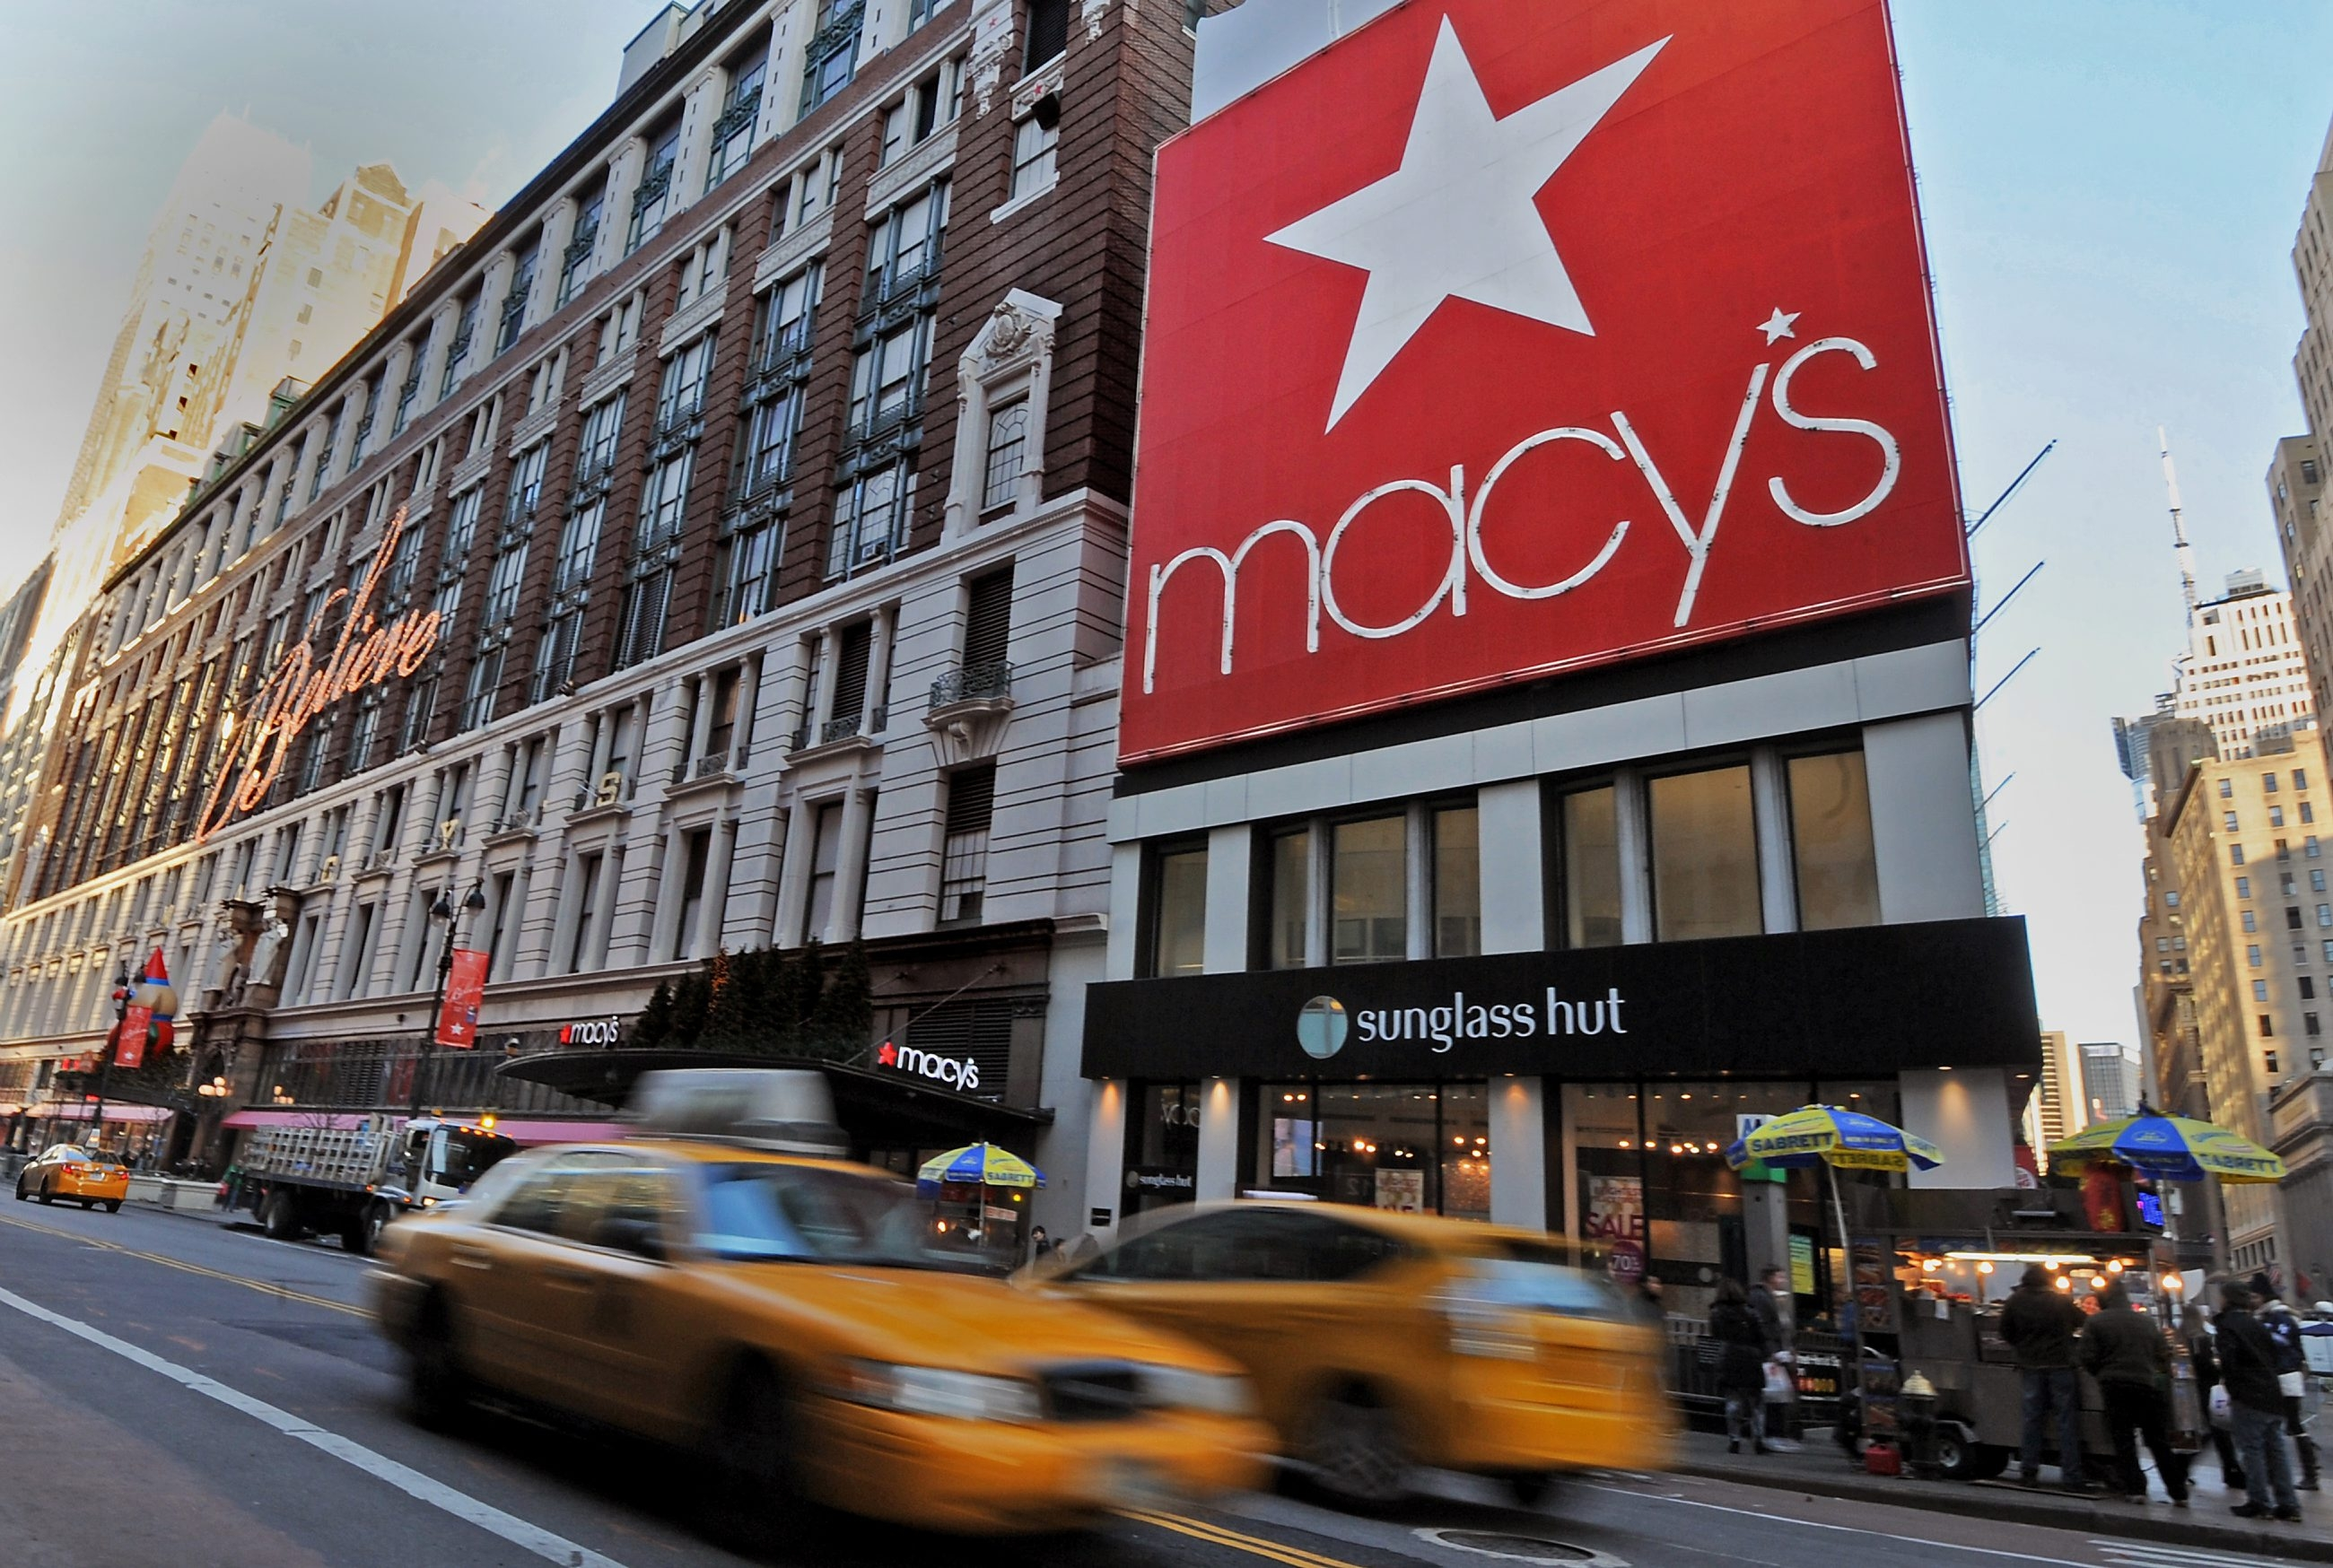 Macy's CEO Terry Lundgren has kept profits growing at the Cincinnati-based company by adding competitively priced exclusive merchandise and letting lower-level managers tailor store offerings to local tastes.